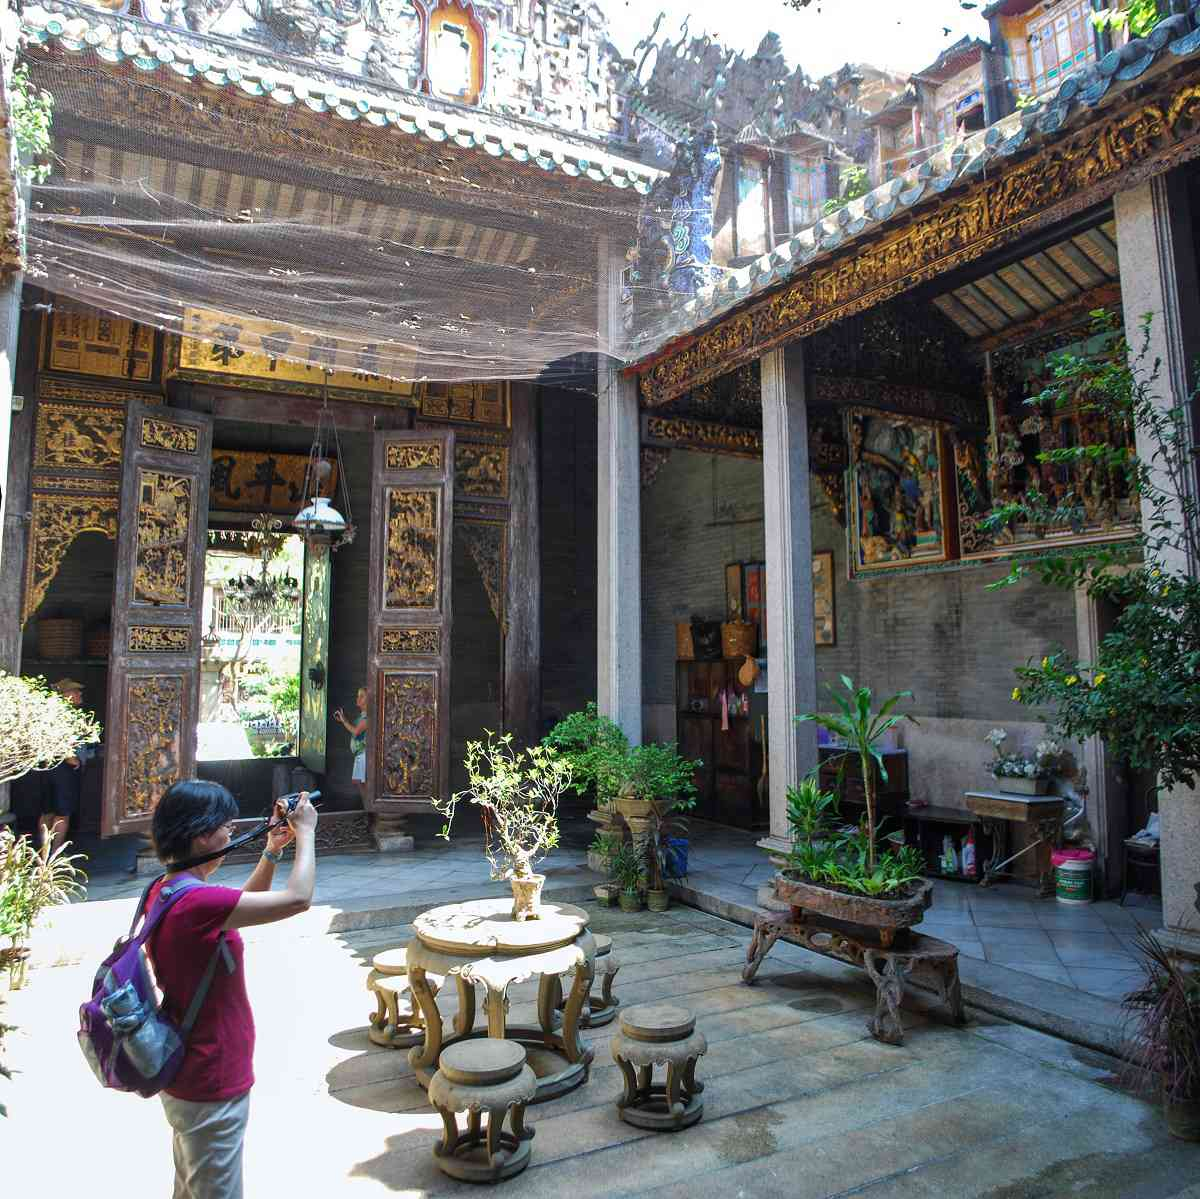 Central Atrium of the Chung Ancestral Temple, Penang, Malaysia